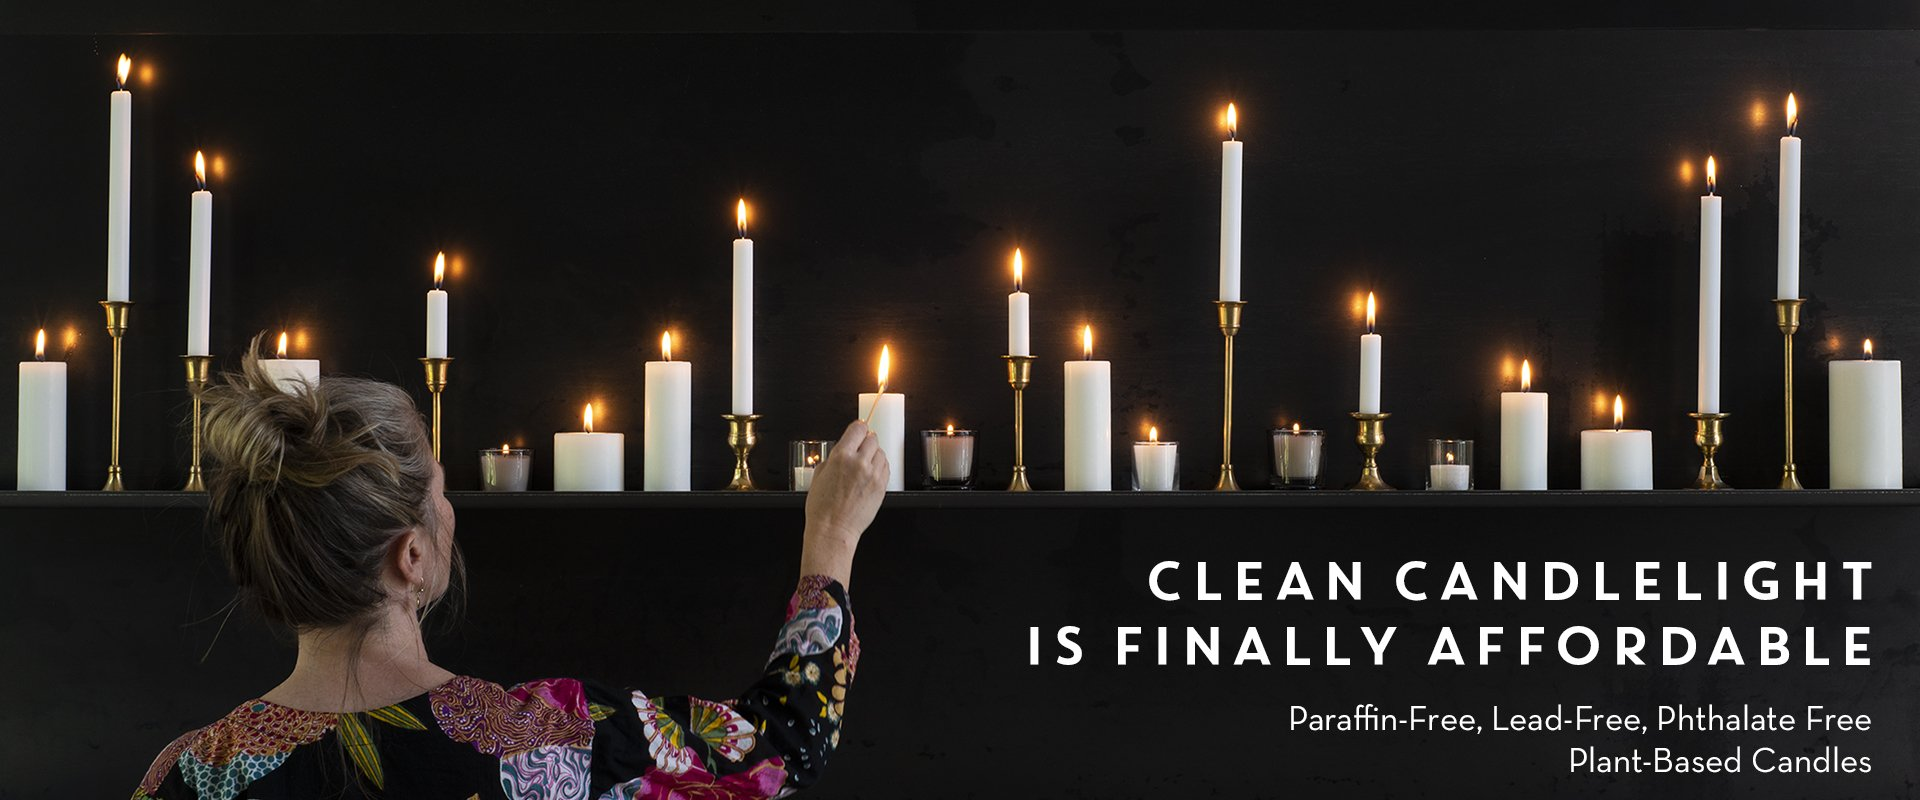 paraffin free, all natural, lead free, phthalate free, non-toxic, clean burning, candles, eco-friendly, asthma friendly, votives, tea lights, tapers, pillars, natural candles, allergy friendly, party, scented, holiday, christmas, gift,